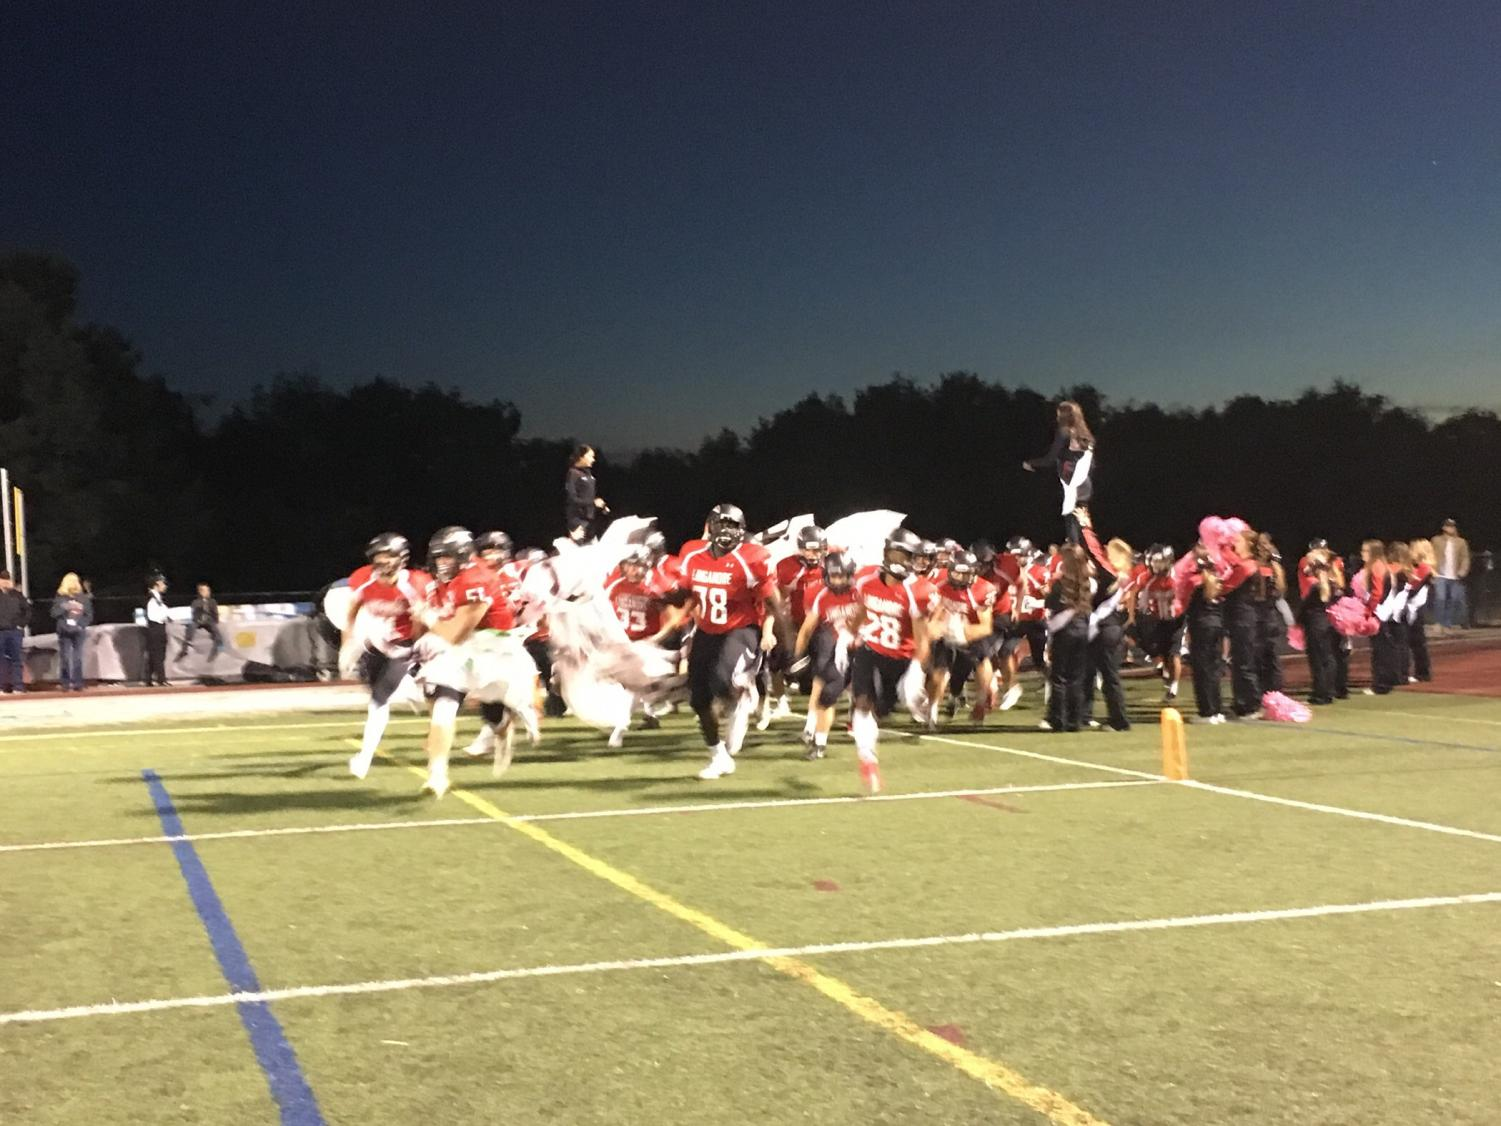 Tre Briscoe leads Linganore' football team out onto the field just before game time.